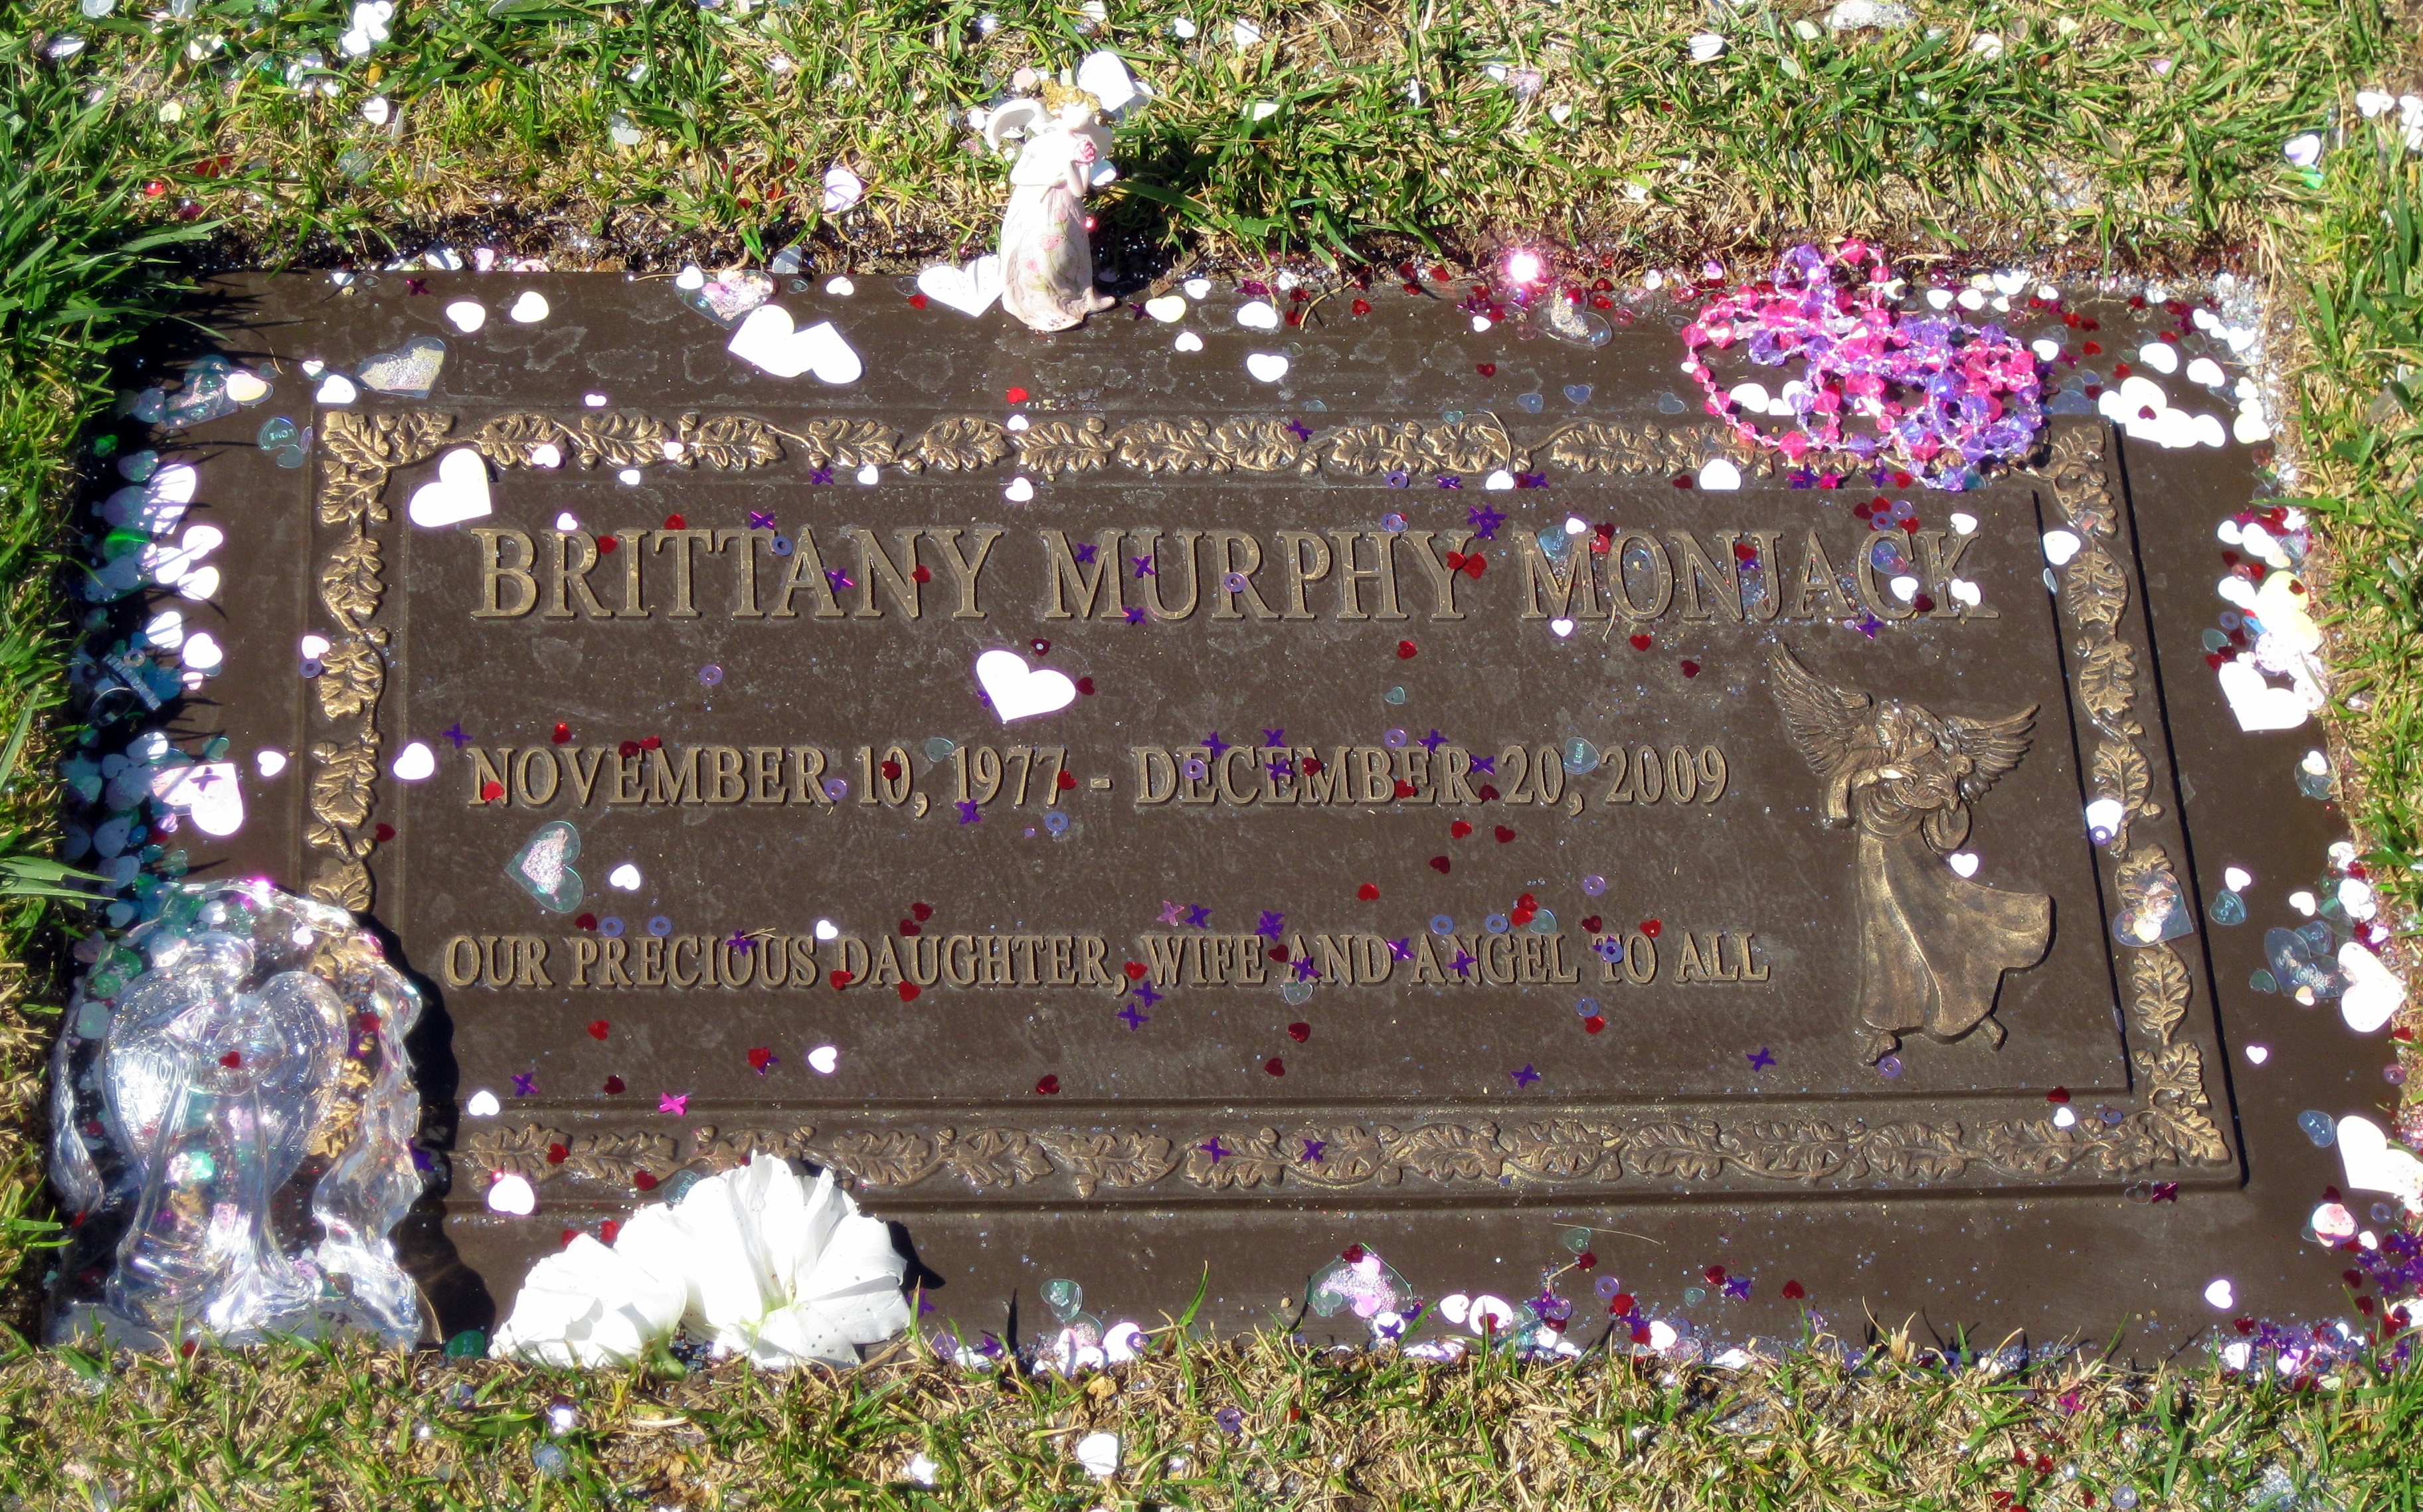 Brittany Murphy is buried in the same cemetery as Michael Jackson 12/25/2009 67